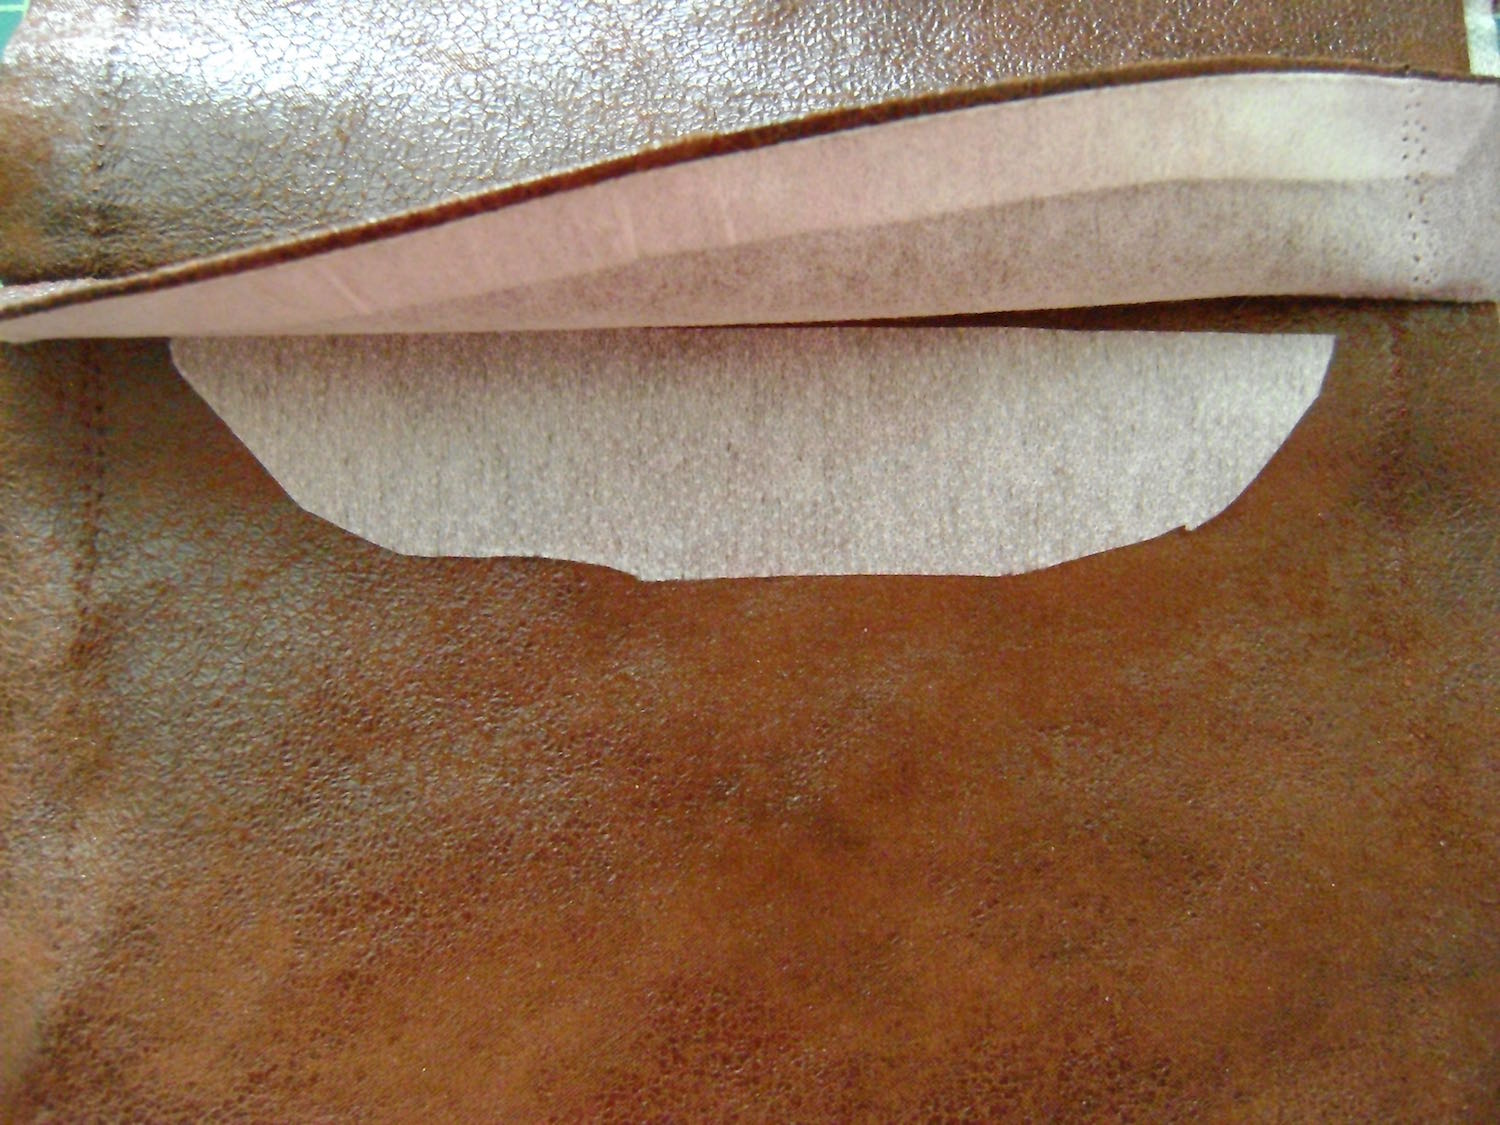 step 4 - Baste the straight edge of the feather cover to the edge of the front matching notches, with wrong side of cover against right side of fabric.  Cut out a piece of interfacing that will fit under the cover.